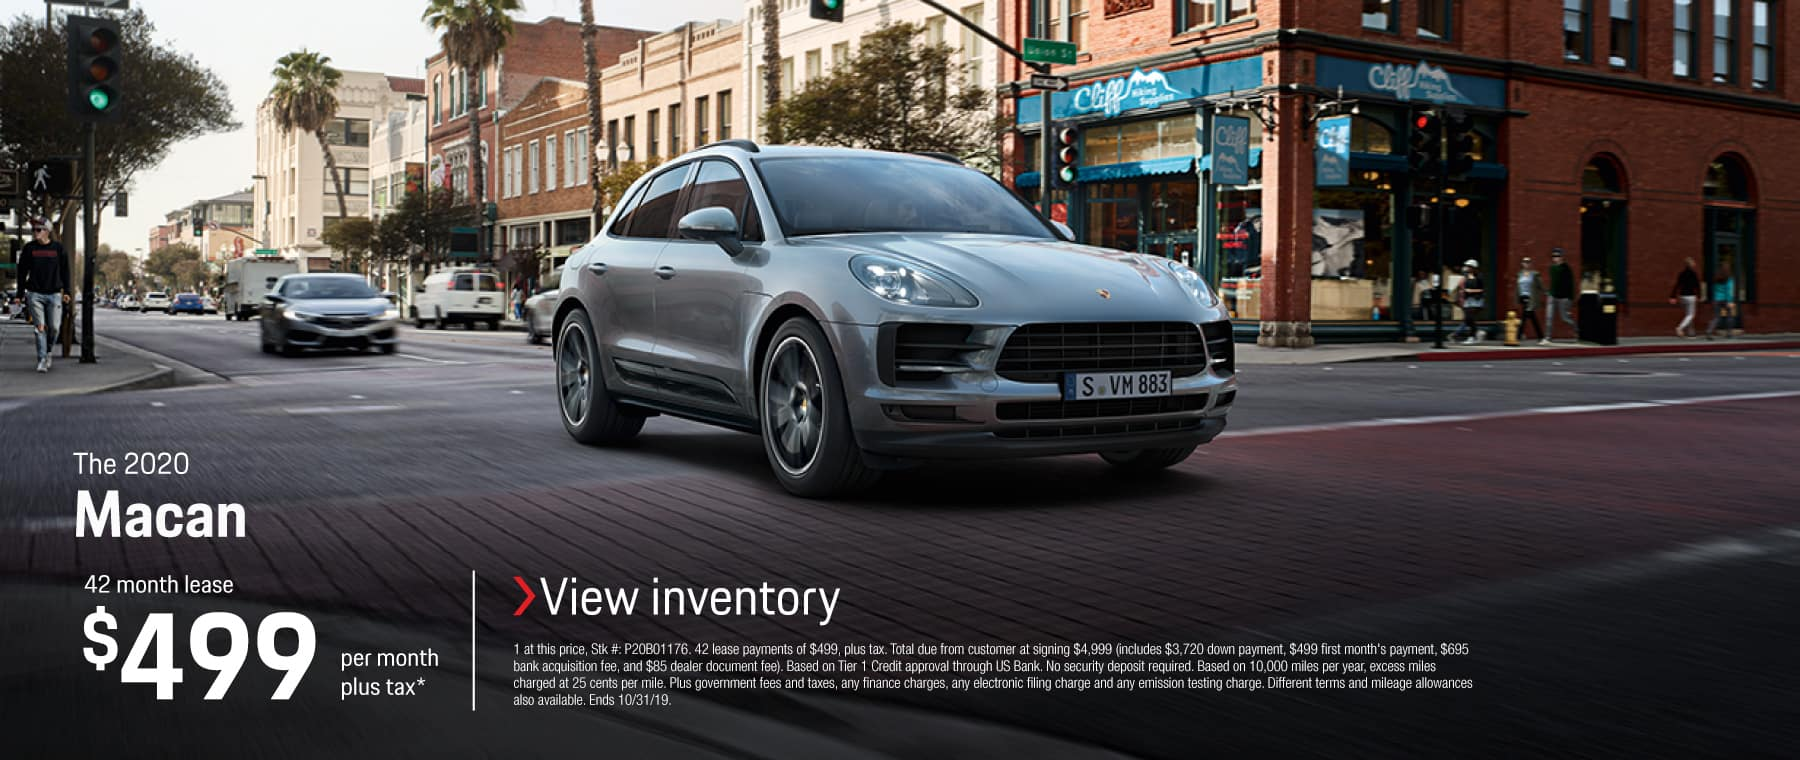 2020 MACAN LEASE 499 / 42 MONTHS